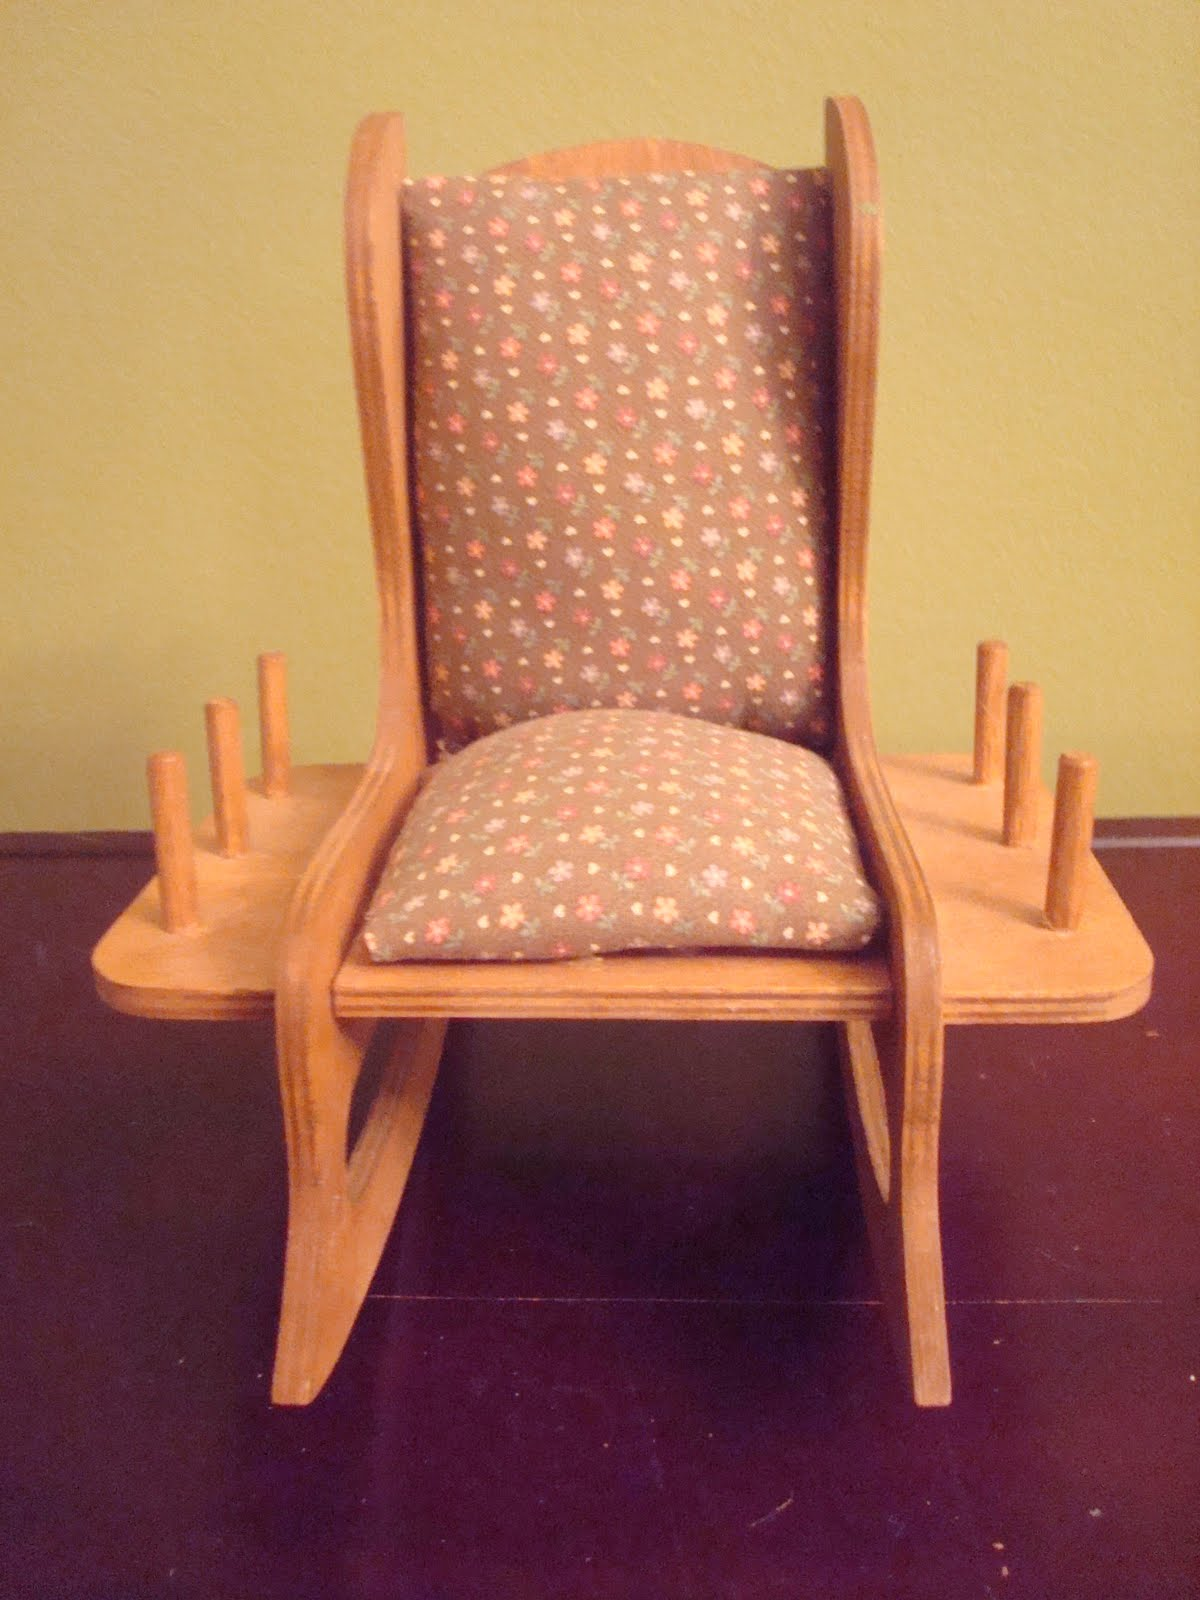 Rocking Chair Cushion Pattern Turquoise Desk Target Thrifty Tickle Pincushion